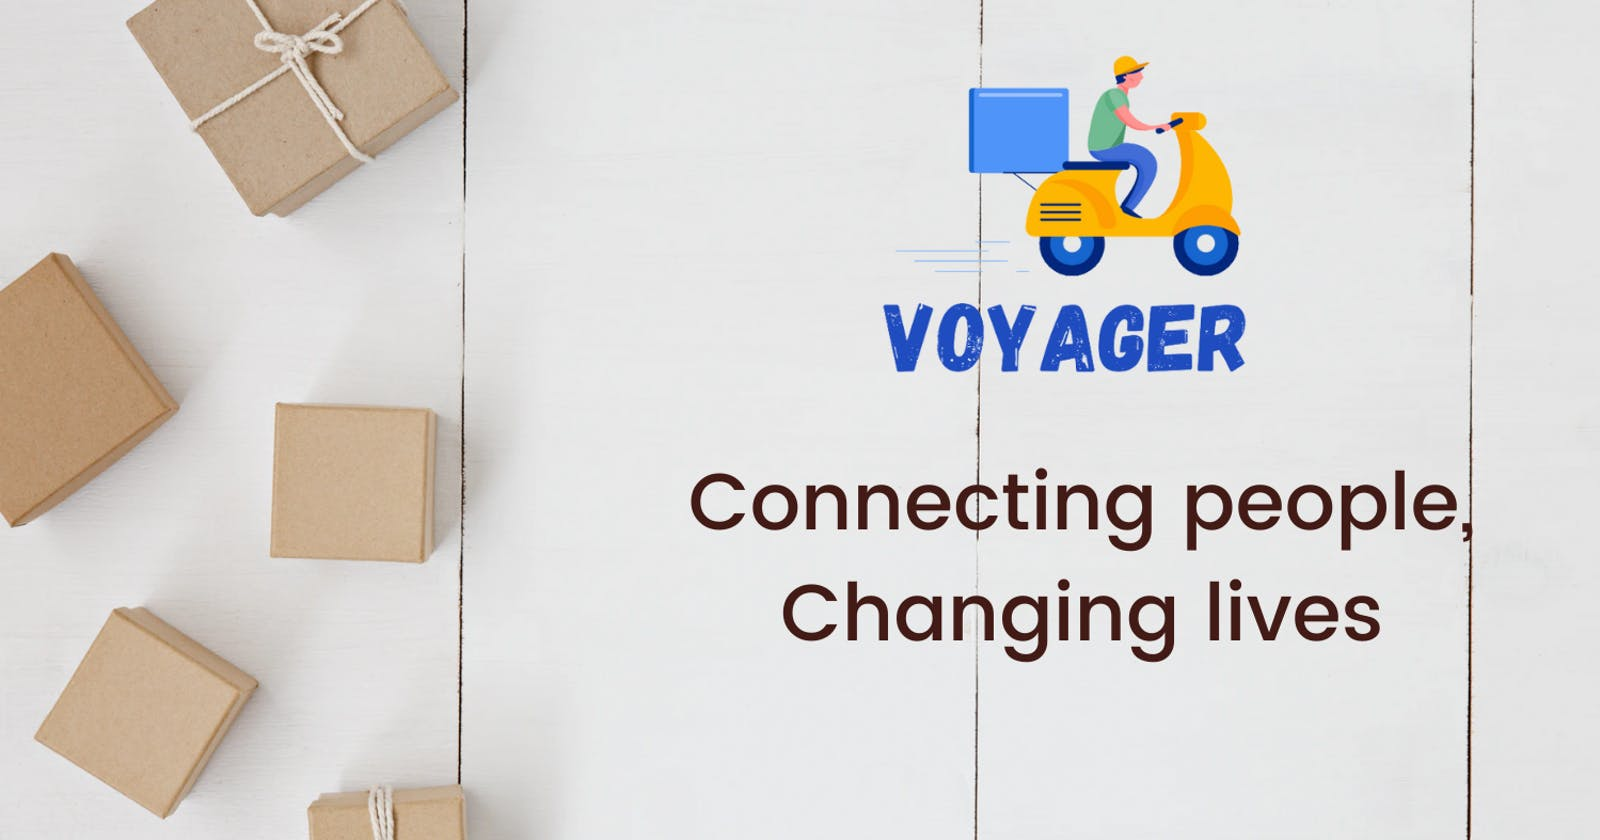 Introducing Voyagger - Connecting people, Changing lives